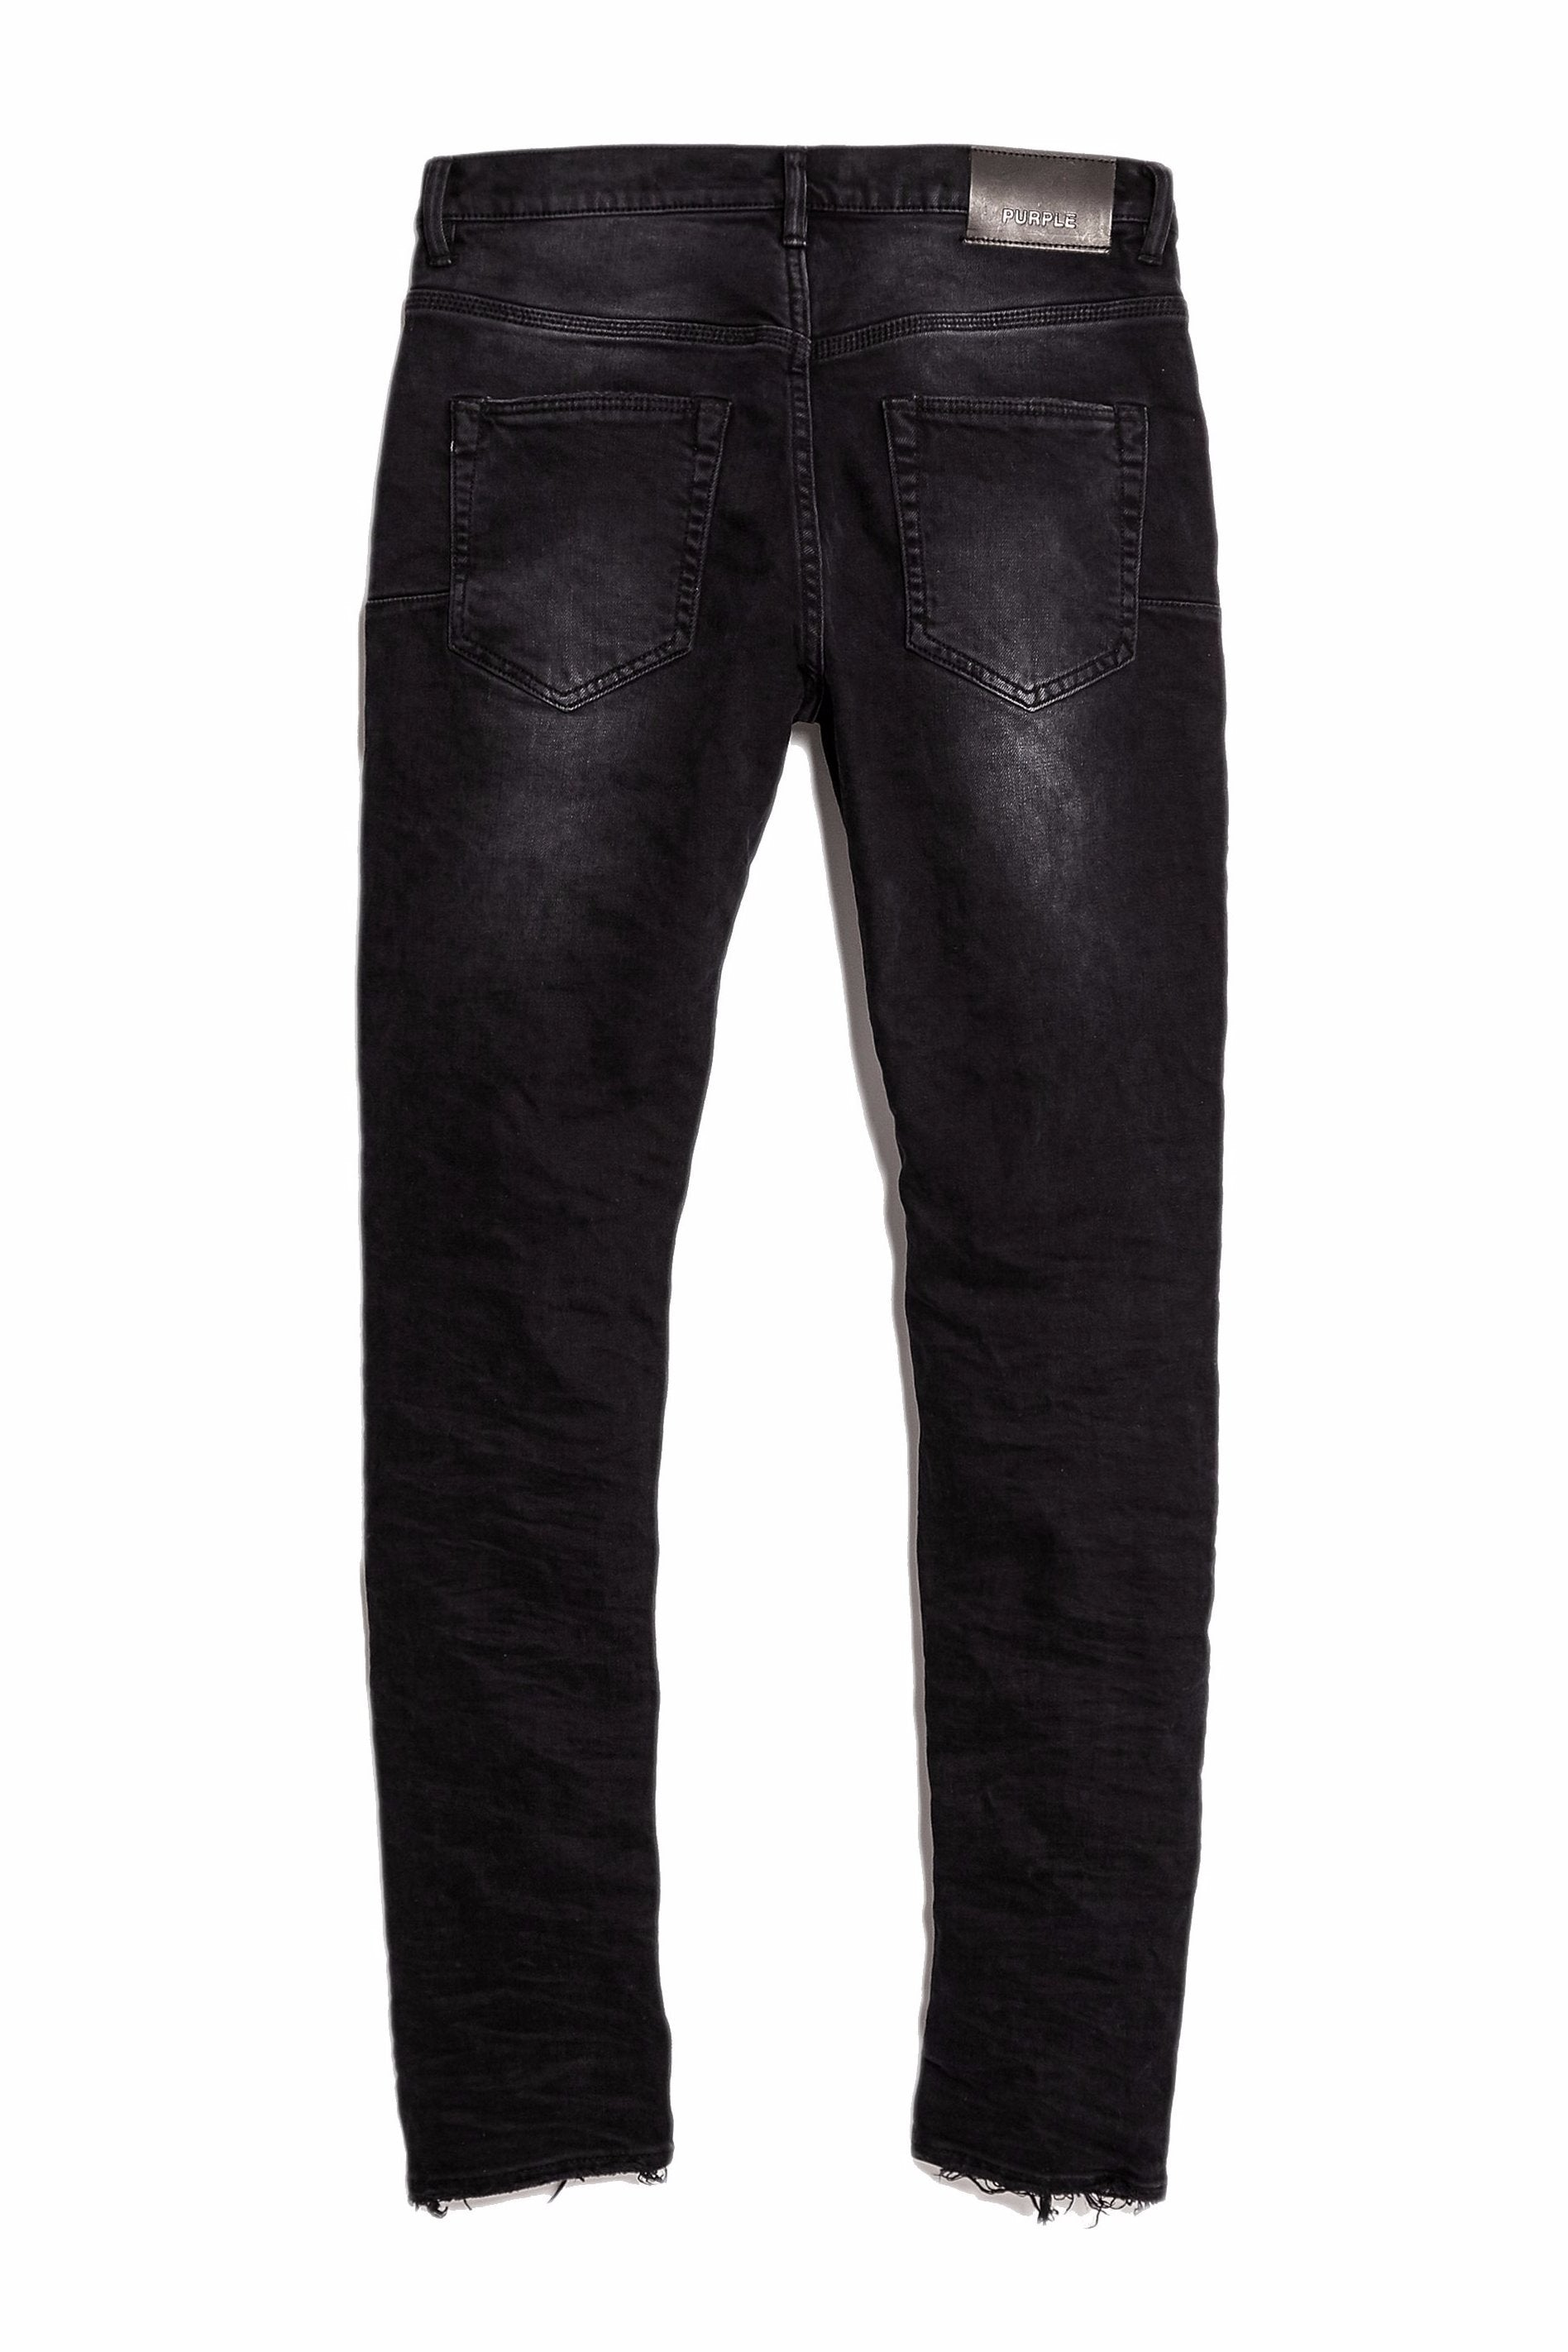 P002 MID RISE WITH TAPERED LEG - BLACK REPAIR